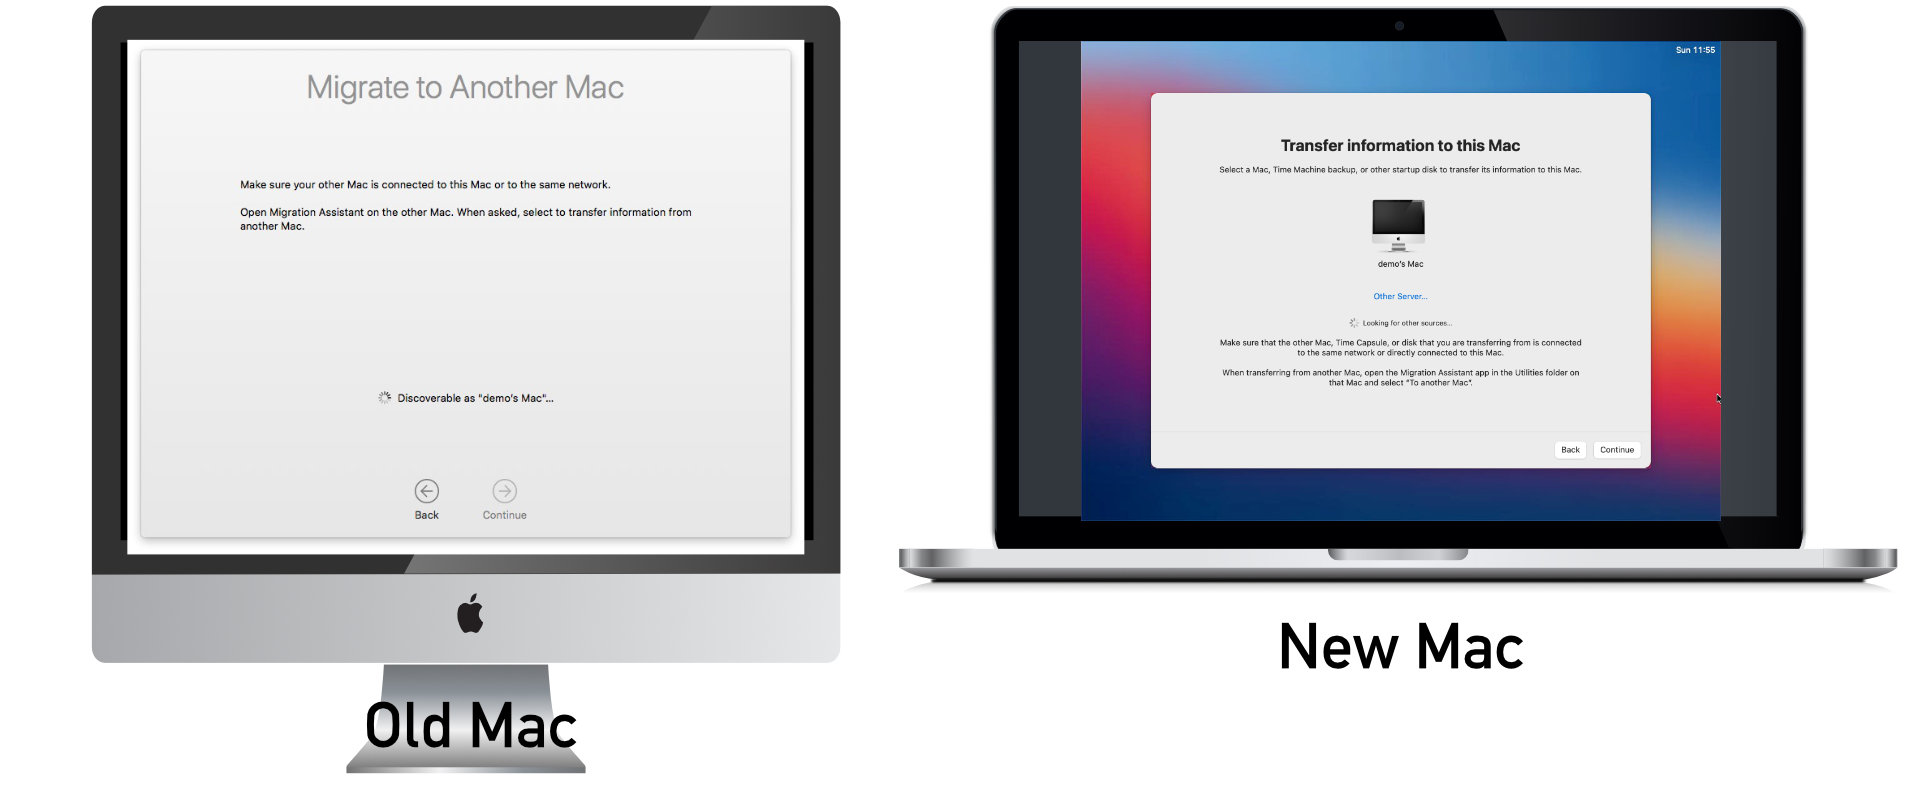 The new computer will now start looking for other Macs to migrate from.